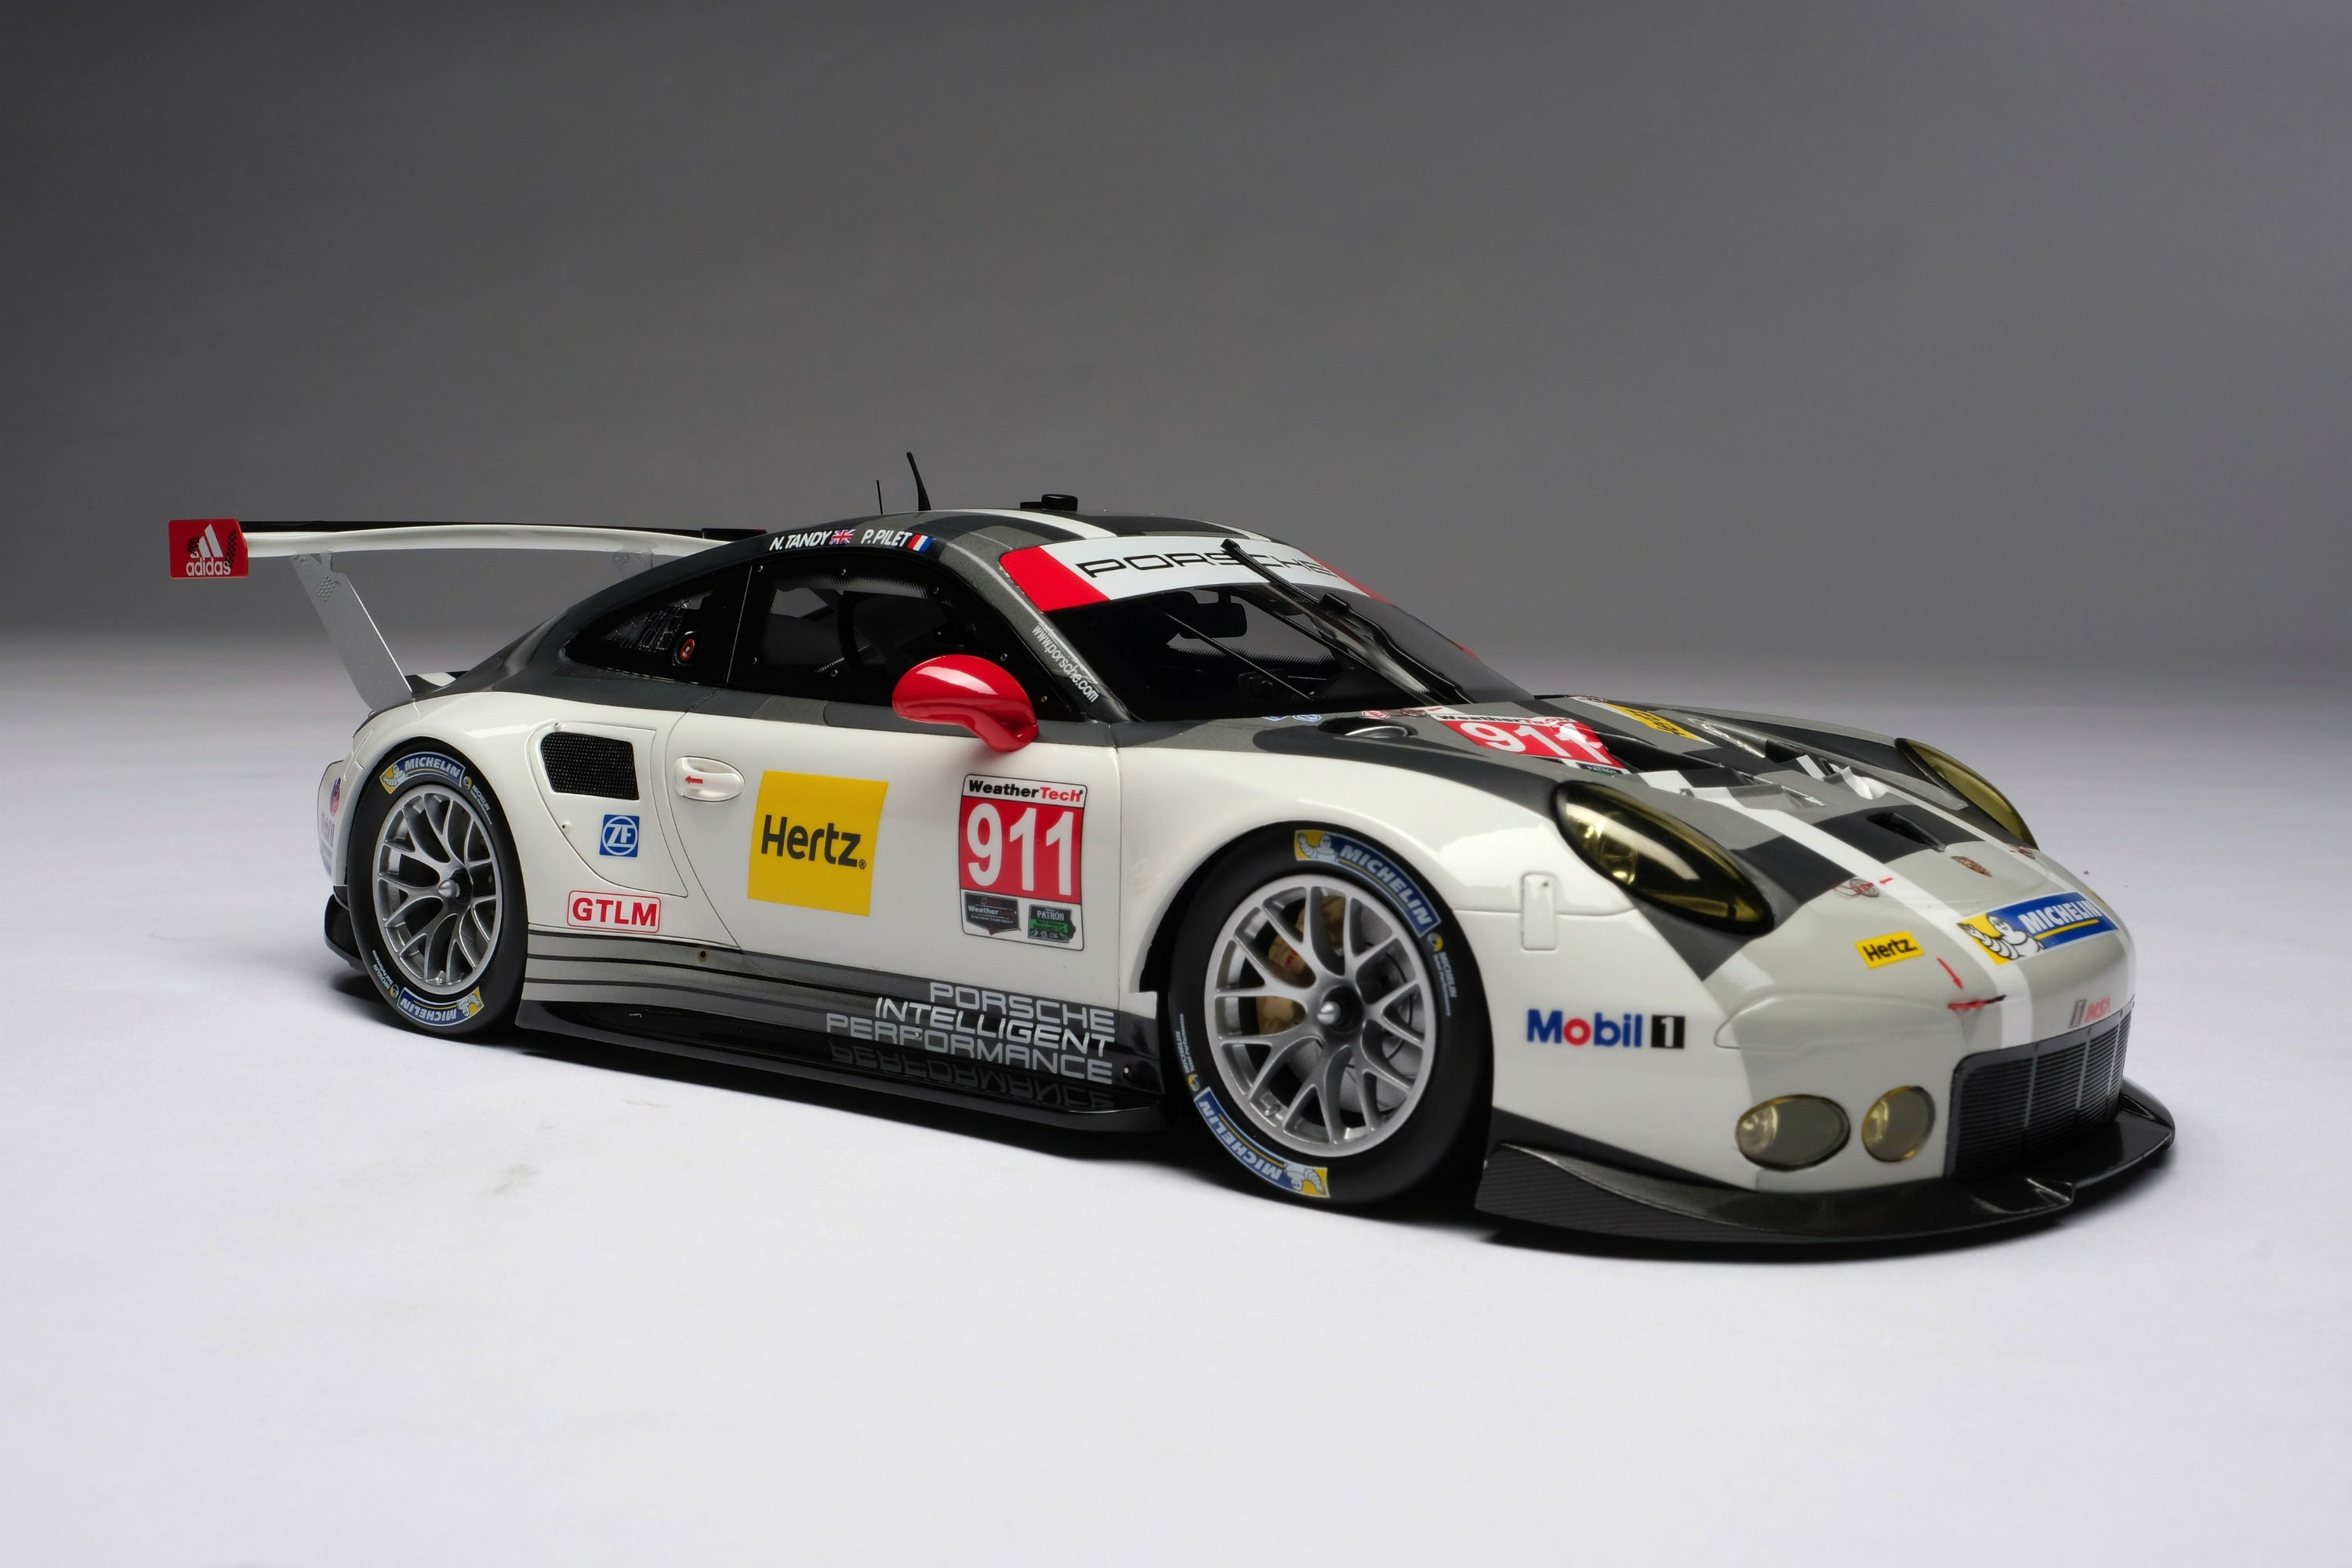 Porsche 911 RSR (2016) | 1:18 Scale Model Car by Amalgam Collection | Front Quarter